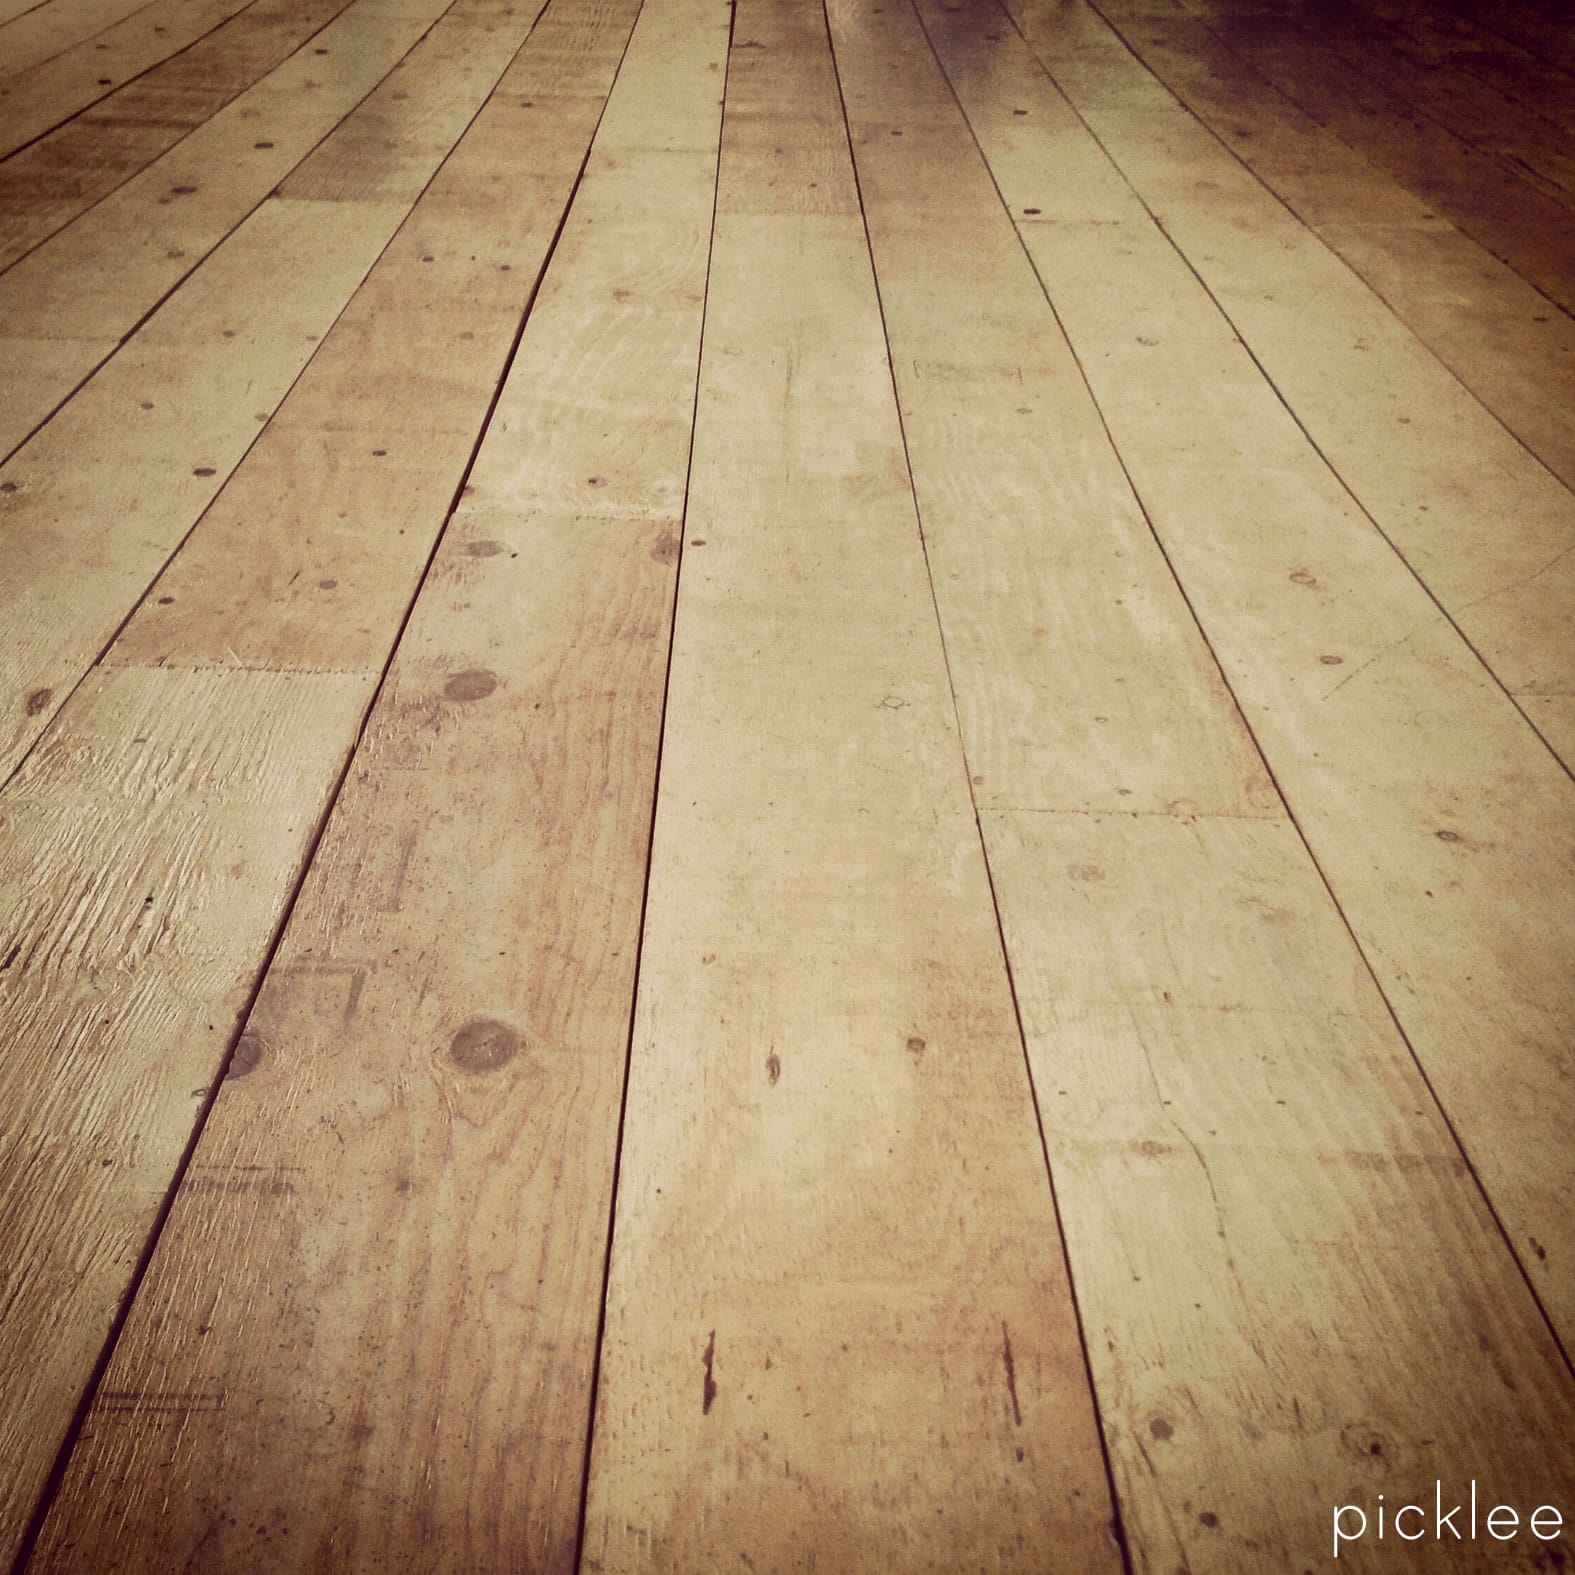 Plywood Flooring Ideas | 1575 x 1575 · 424 kB · jpeg